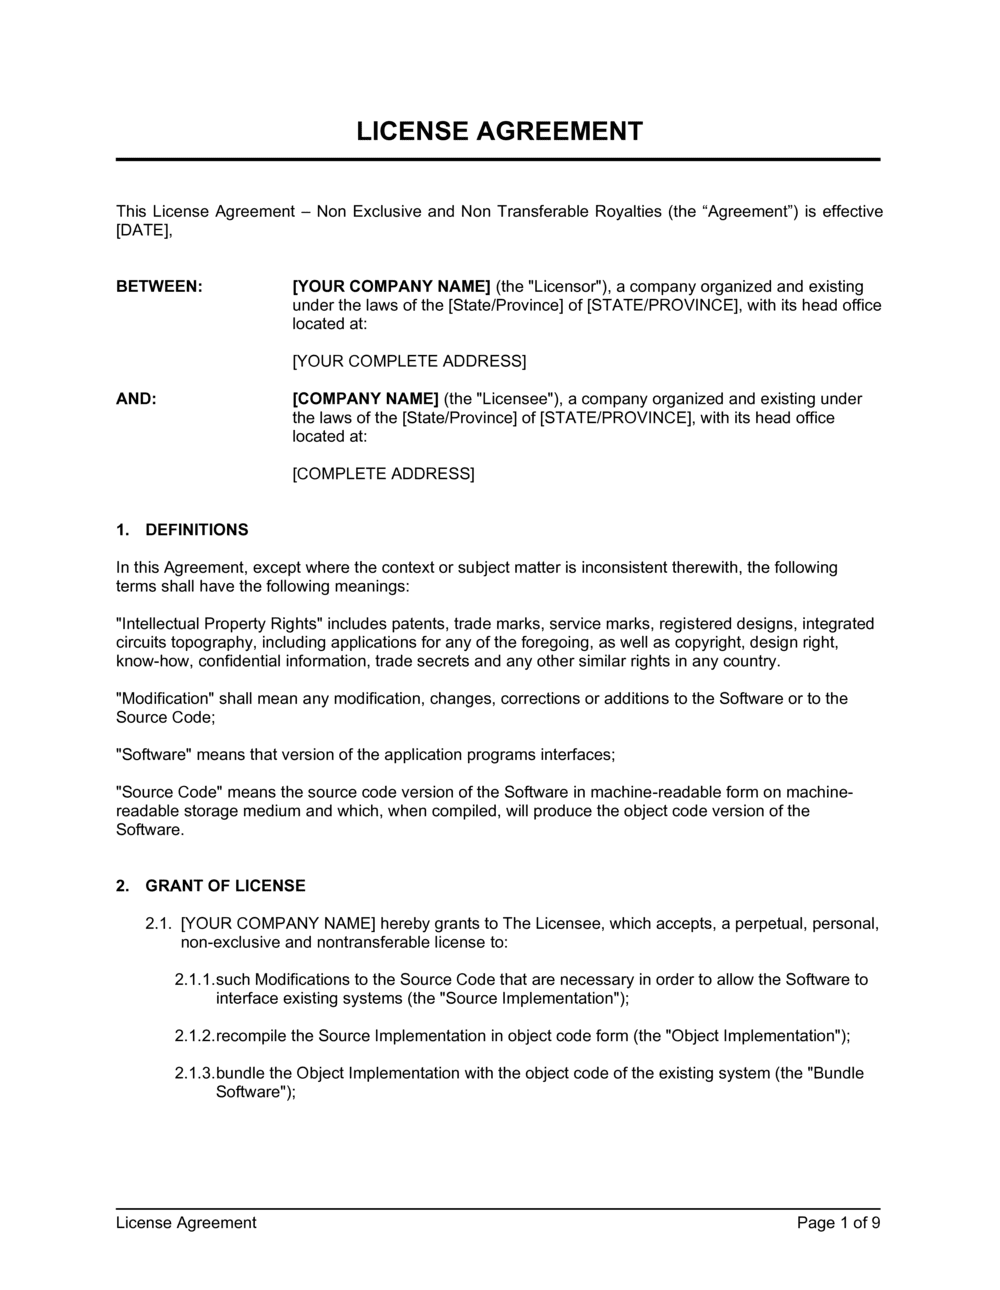 Business-in-a-Box's License Agreement Non Exclusive and Non Transferable_Royalties Template